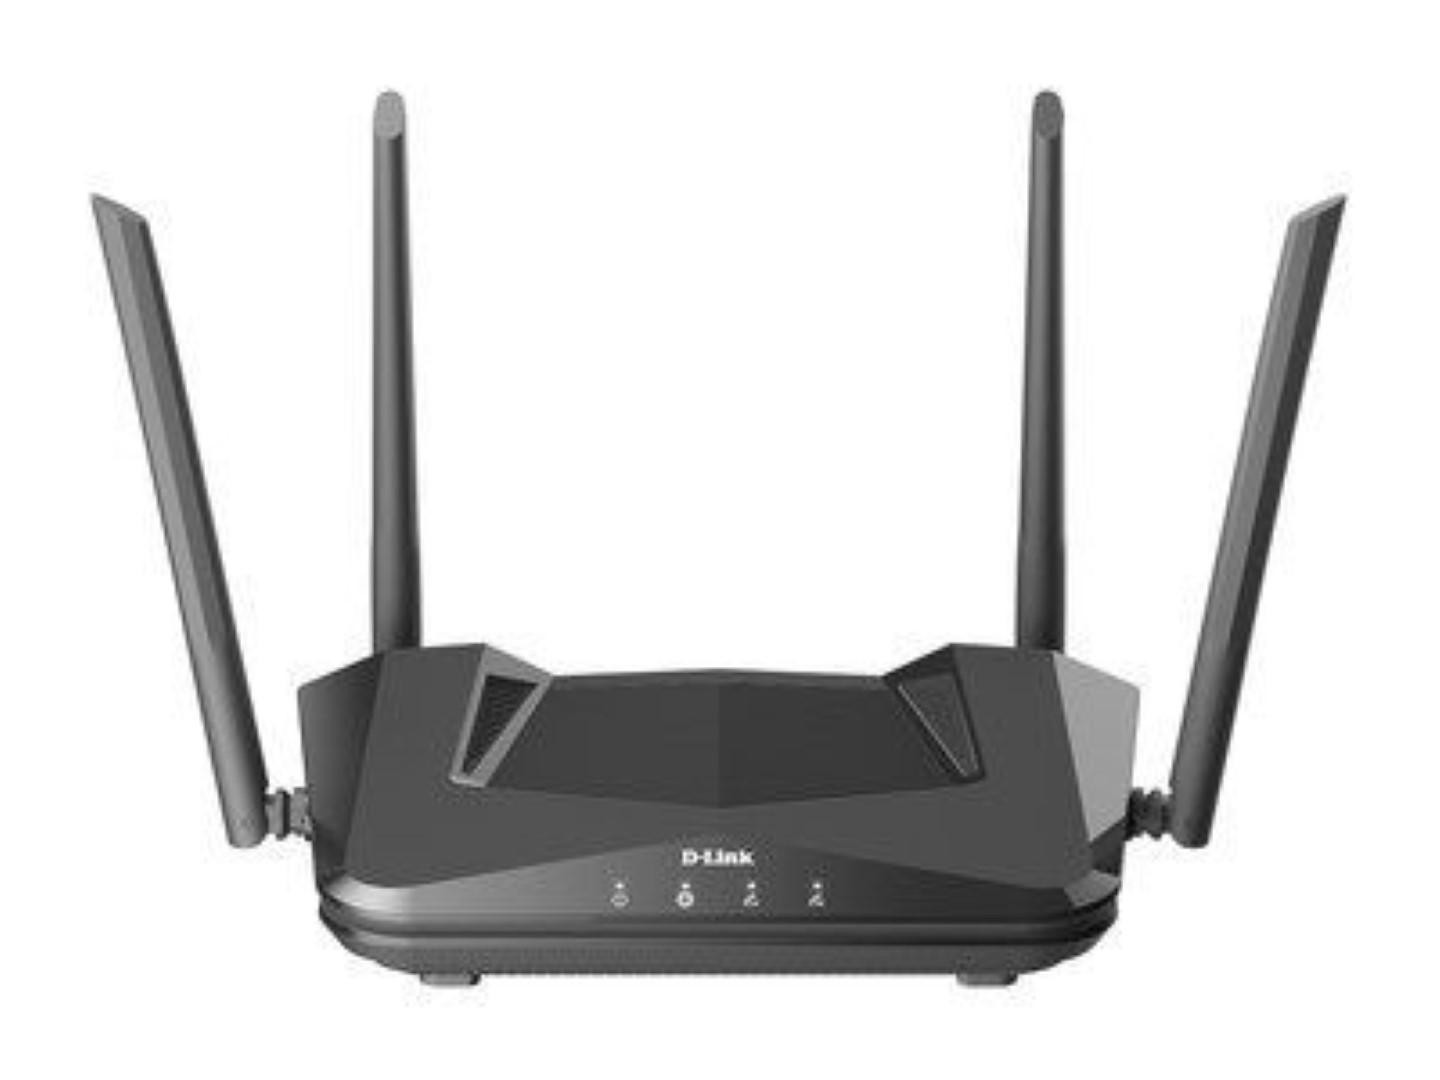 D-Link AX1500 Wi-Fi Router, DIR-X1560; Wireless Speed: 1200Mbps + 300Mbps; SDRAM: 256MB; Flash: 128MB; 4 External Fixed Antennas; Wi-Fi 6 (802.11ax), Dual-band Wi-Fi with up to 4 simultaneous streams, Ports: 4 LAN, 1 WAN, MU-MIMO, Wireless Security: Latest 128-bit wireless encryption. - imaginea 1